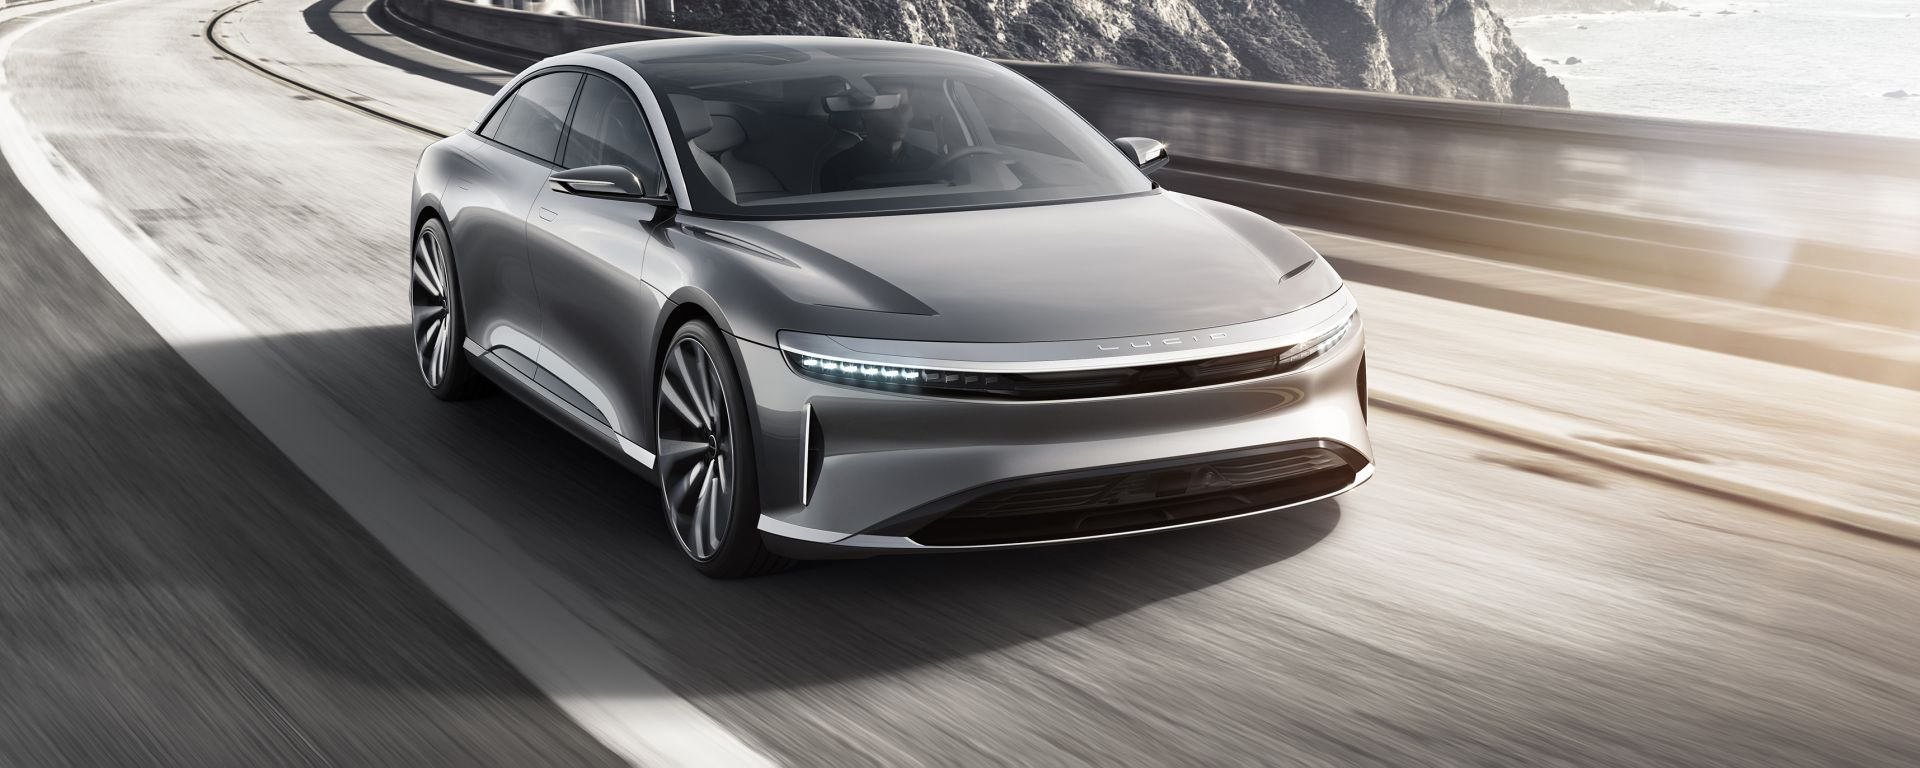 Lucid Air: vista frontale